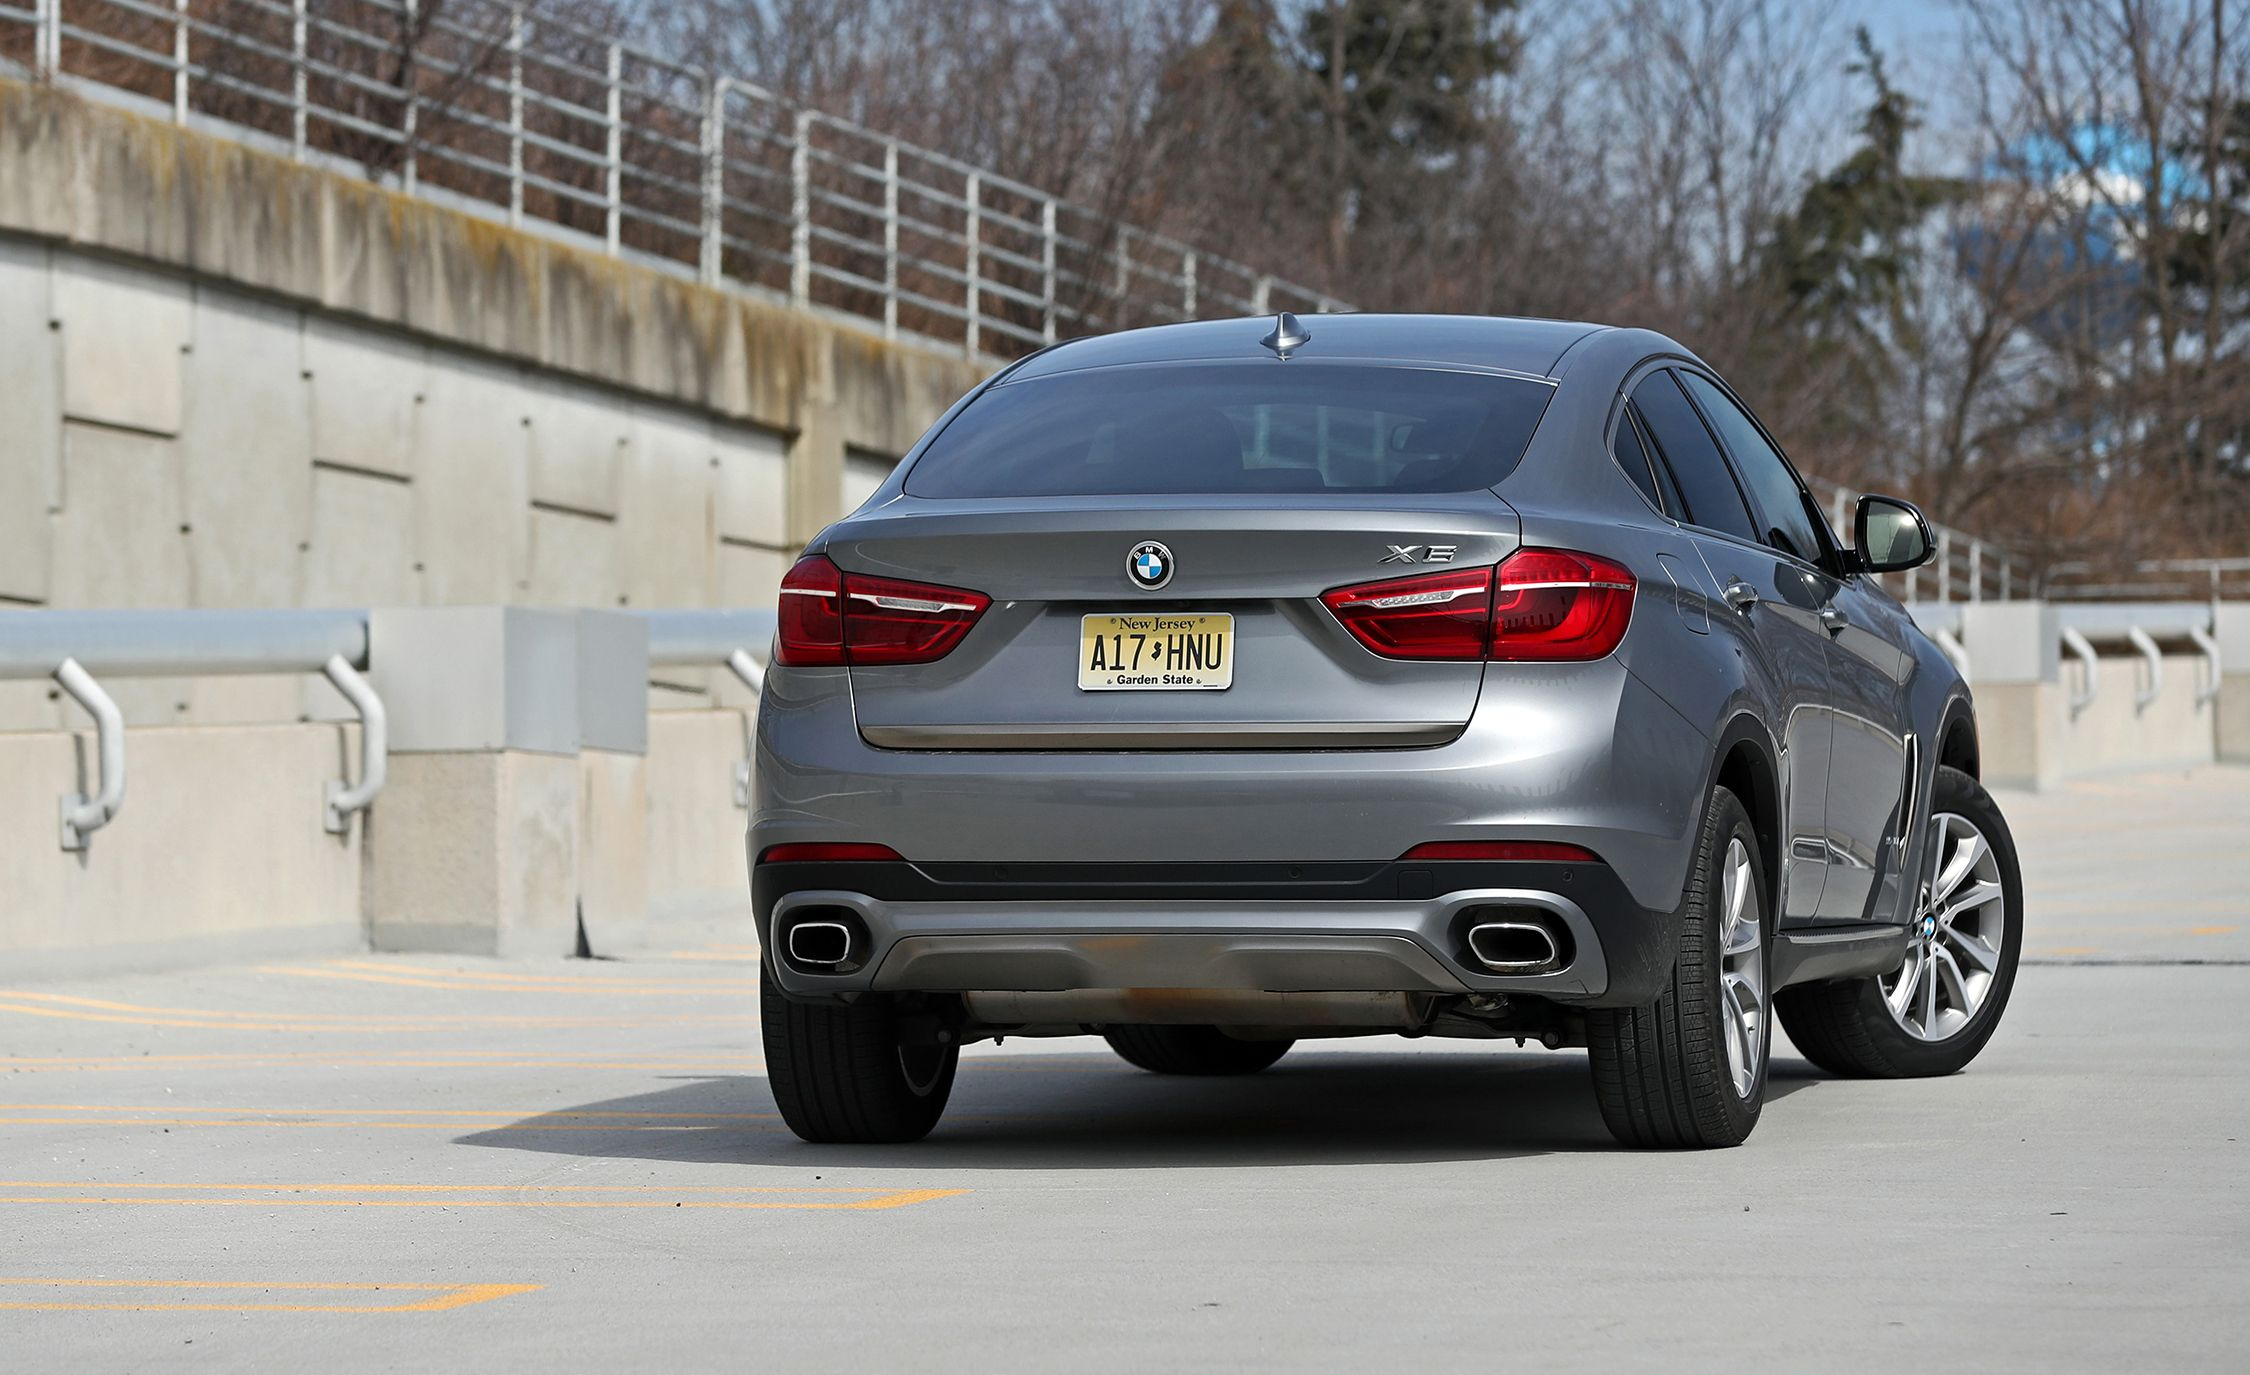 2018 Bmw X6 Warranty And Maintenance Coverage Review Car And Driver